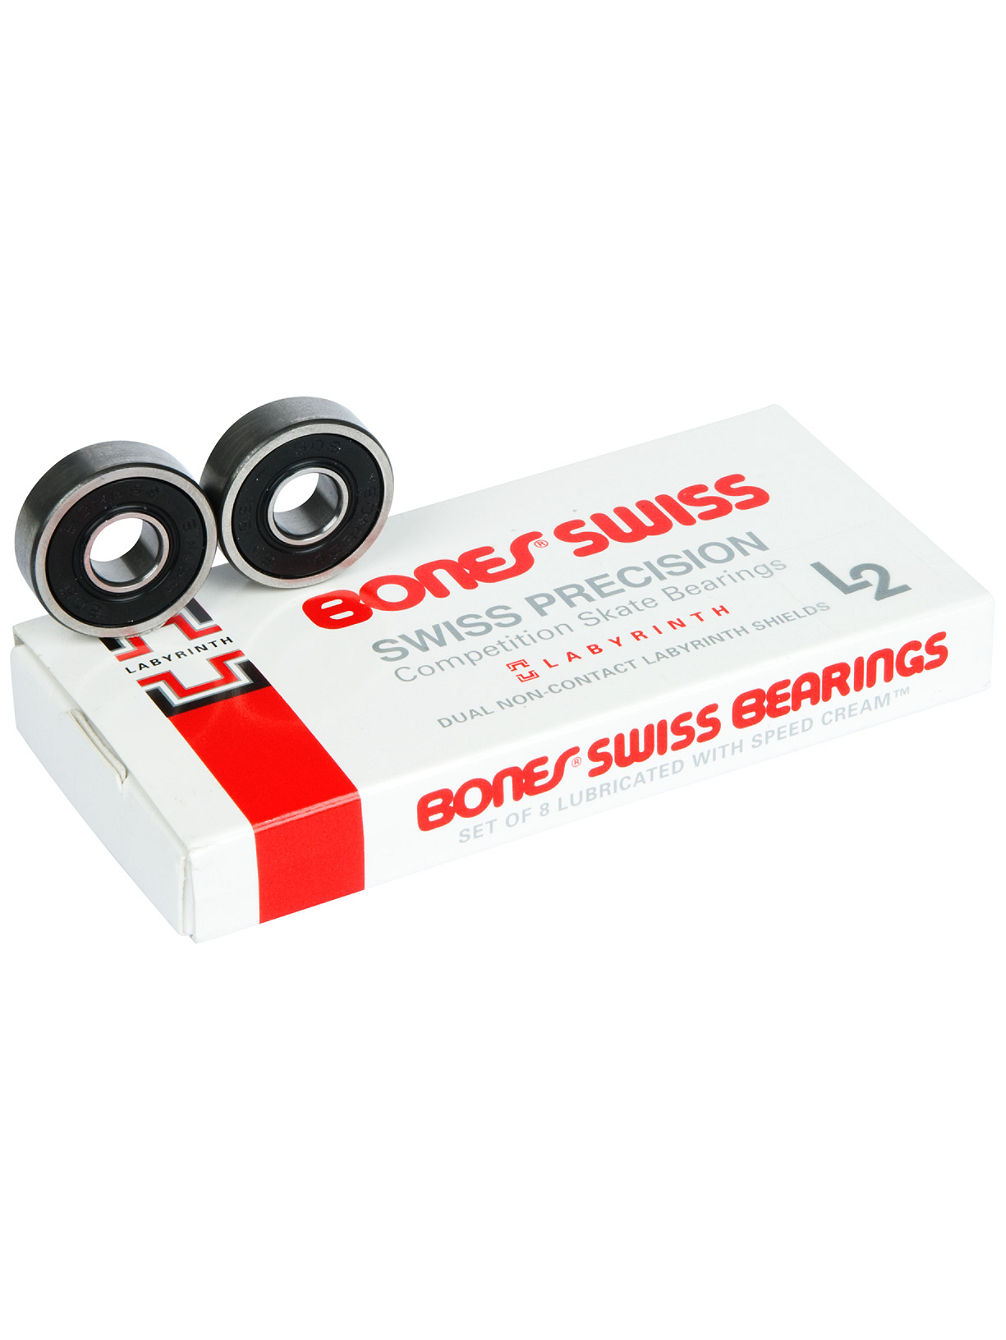 bones-bearings-bones-swiss-labyrinth-l2-bearings